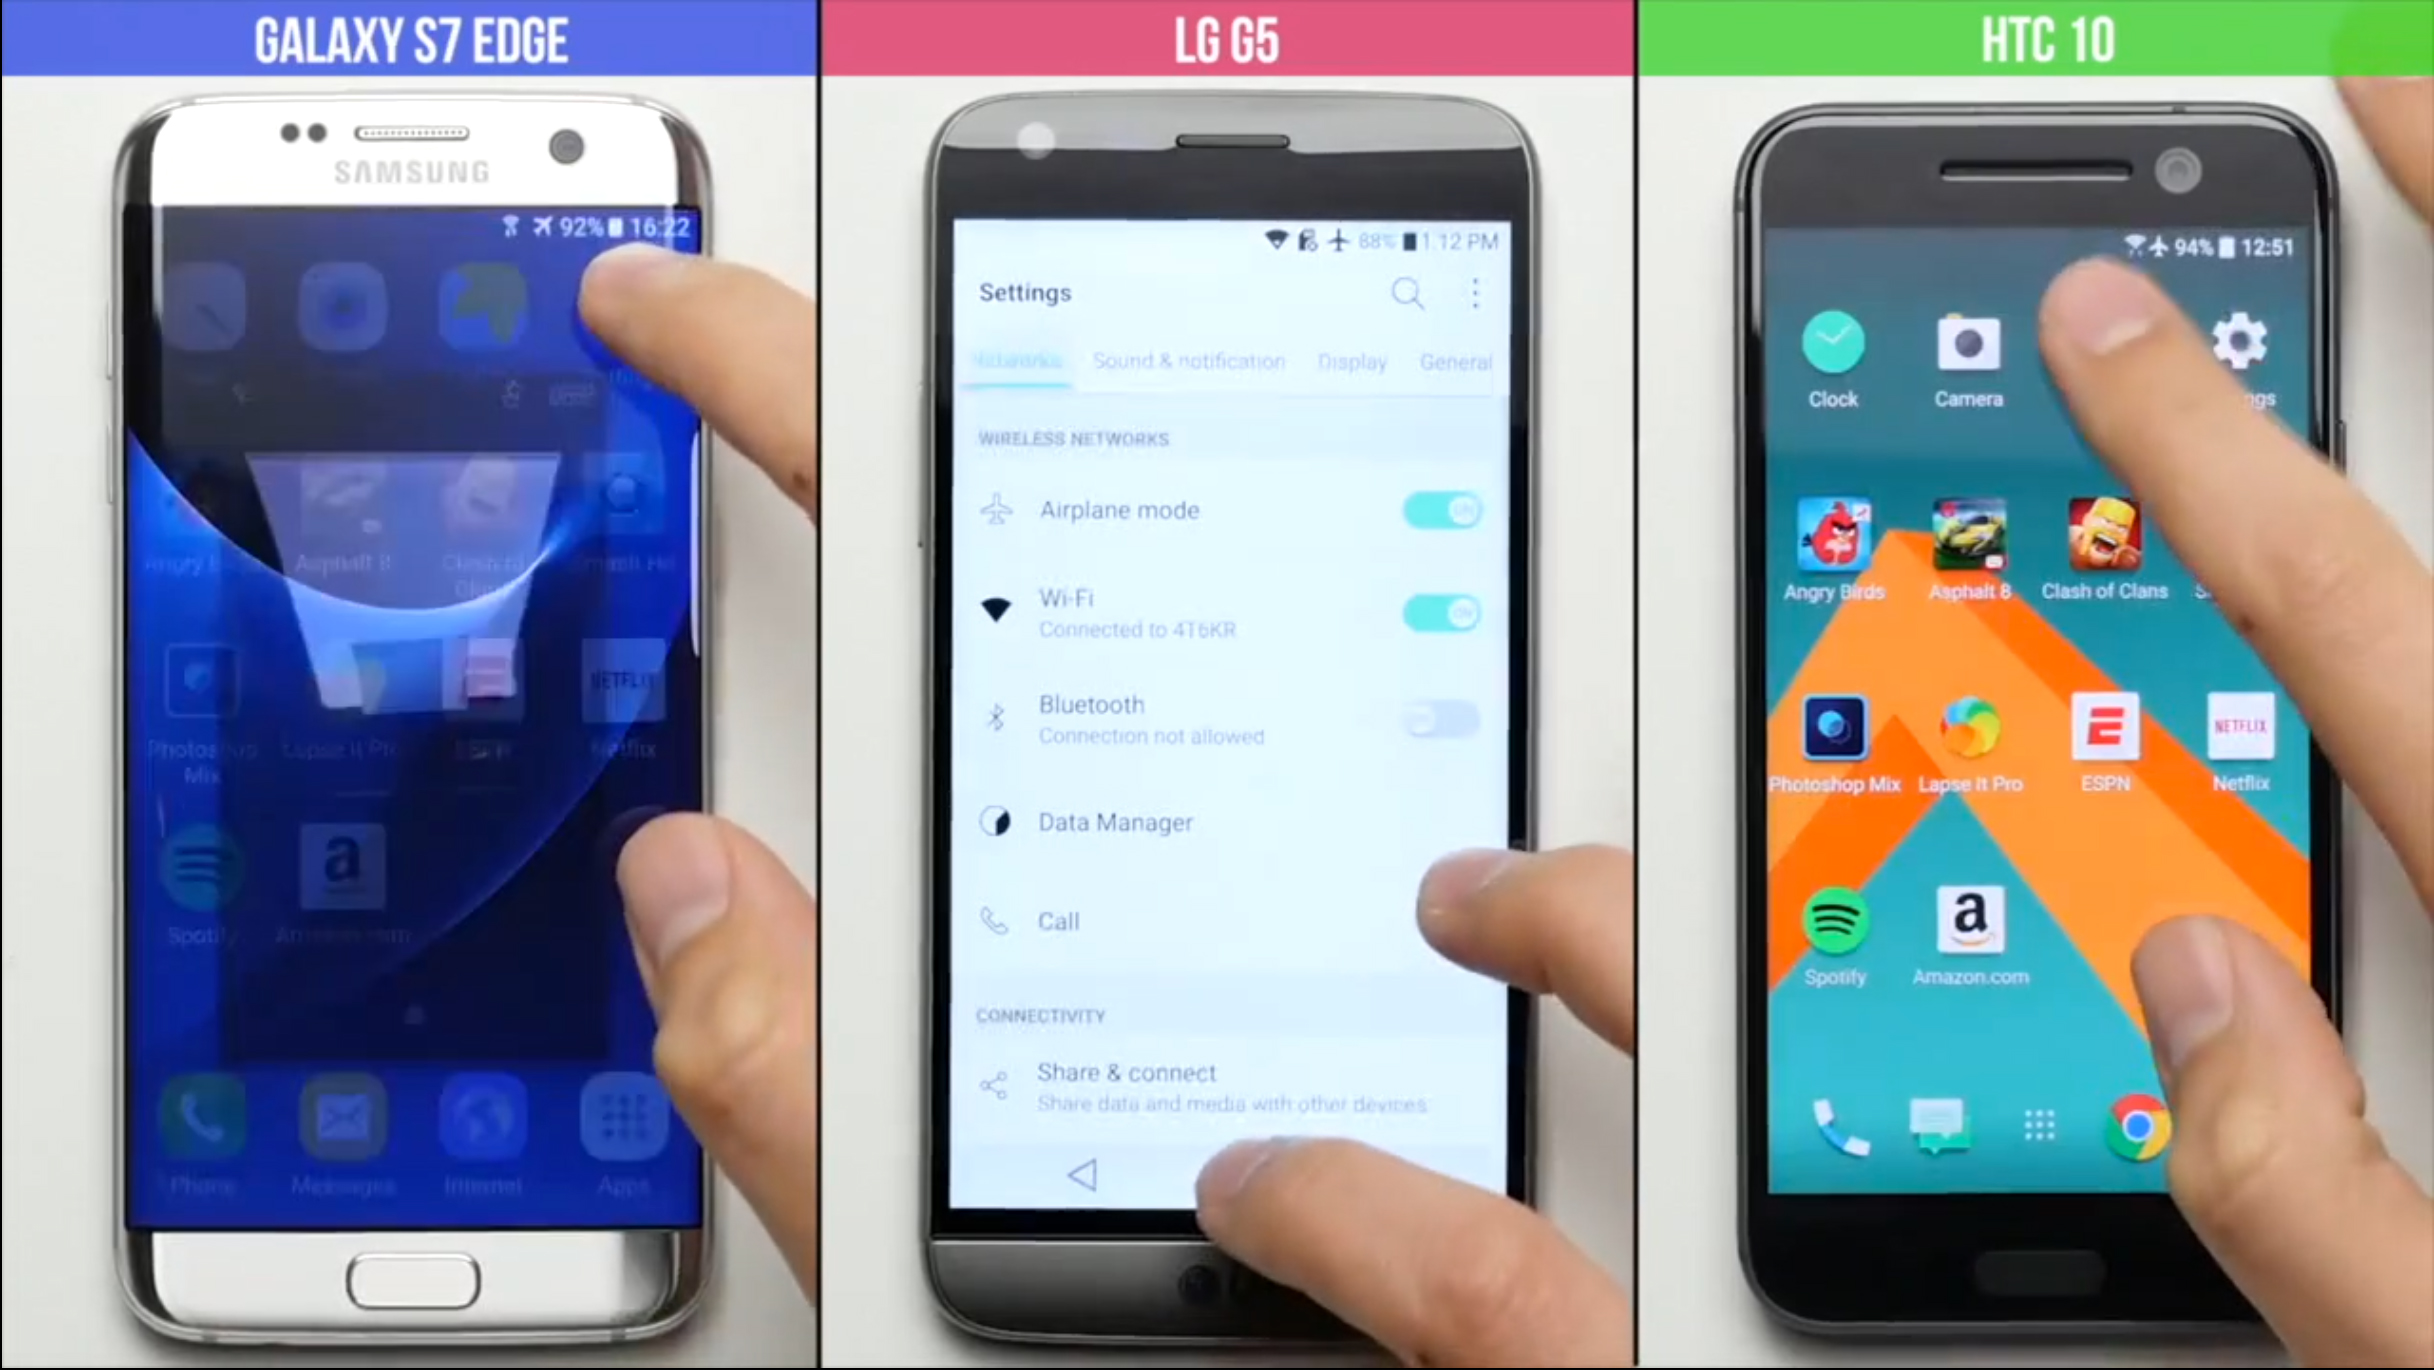 Speed-Test-Galaxy-S7-vs-LG-G5-vs-HTC-10